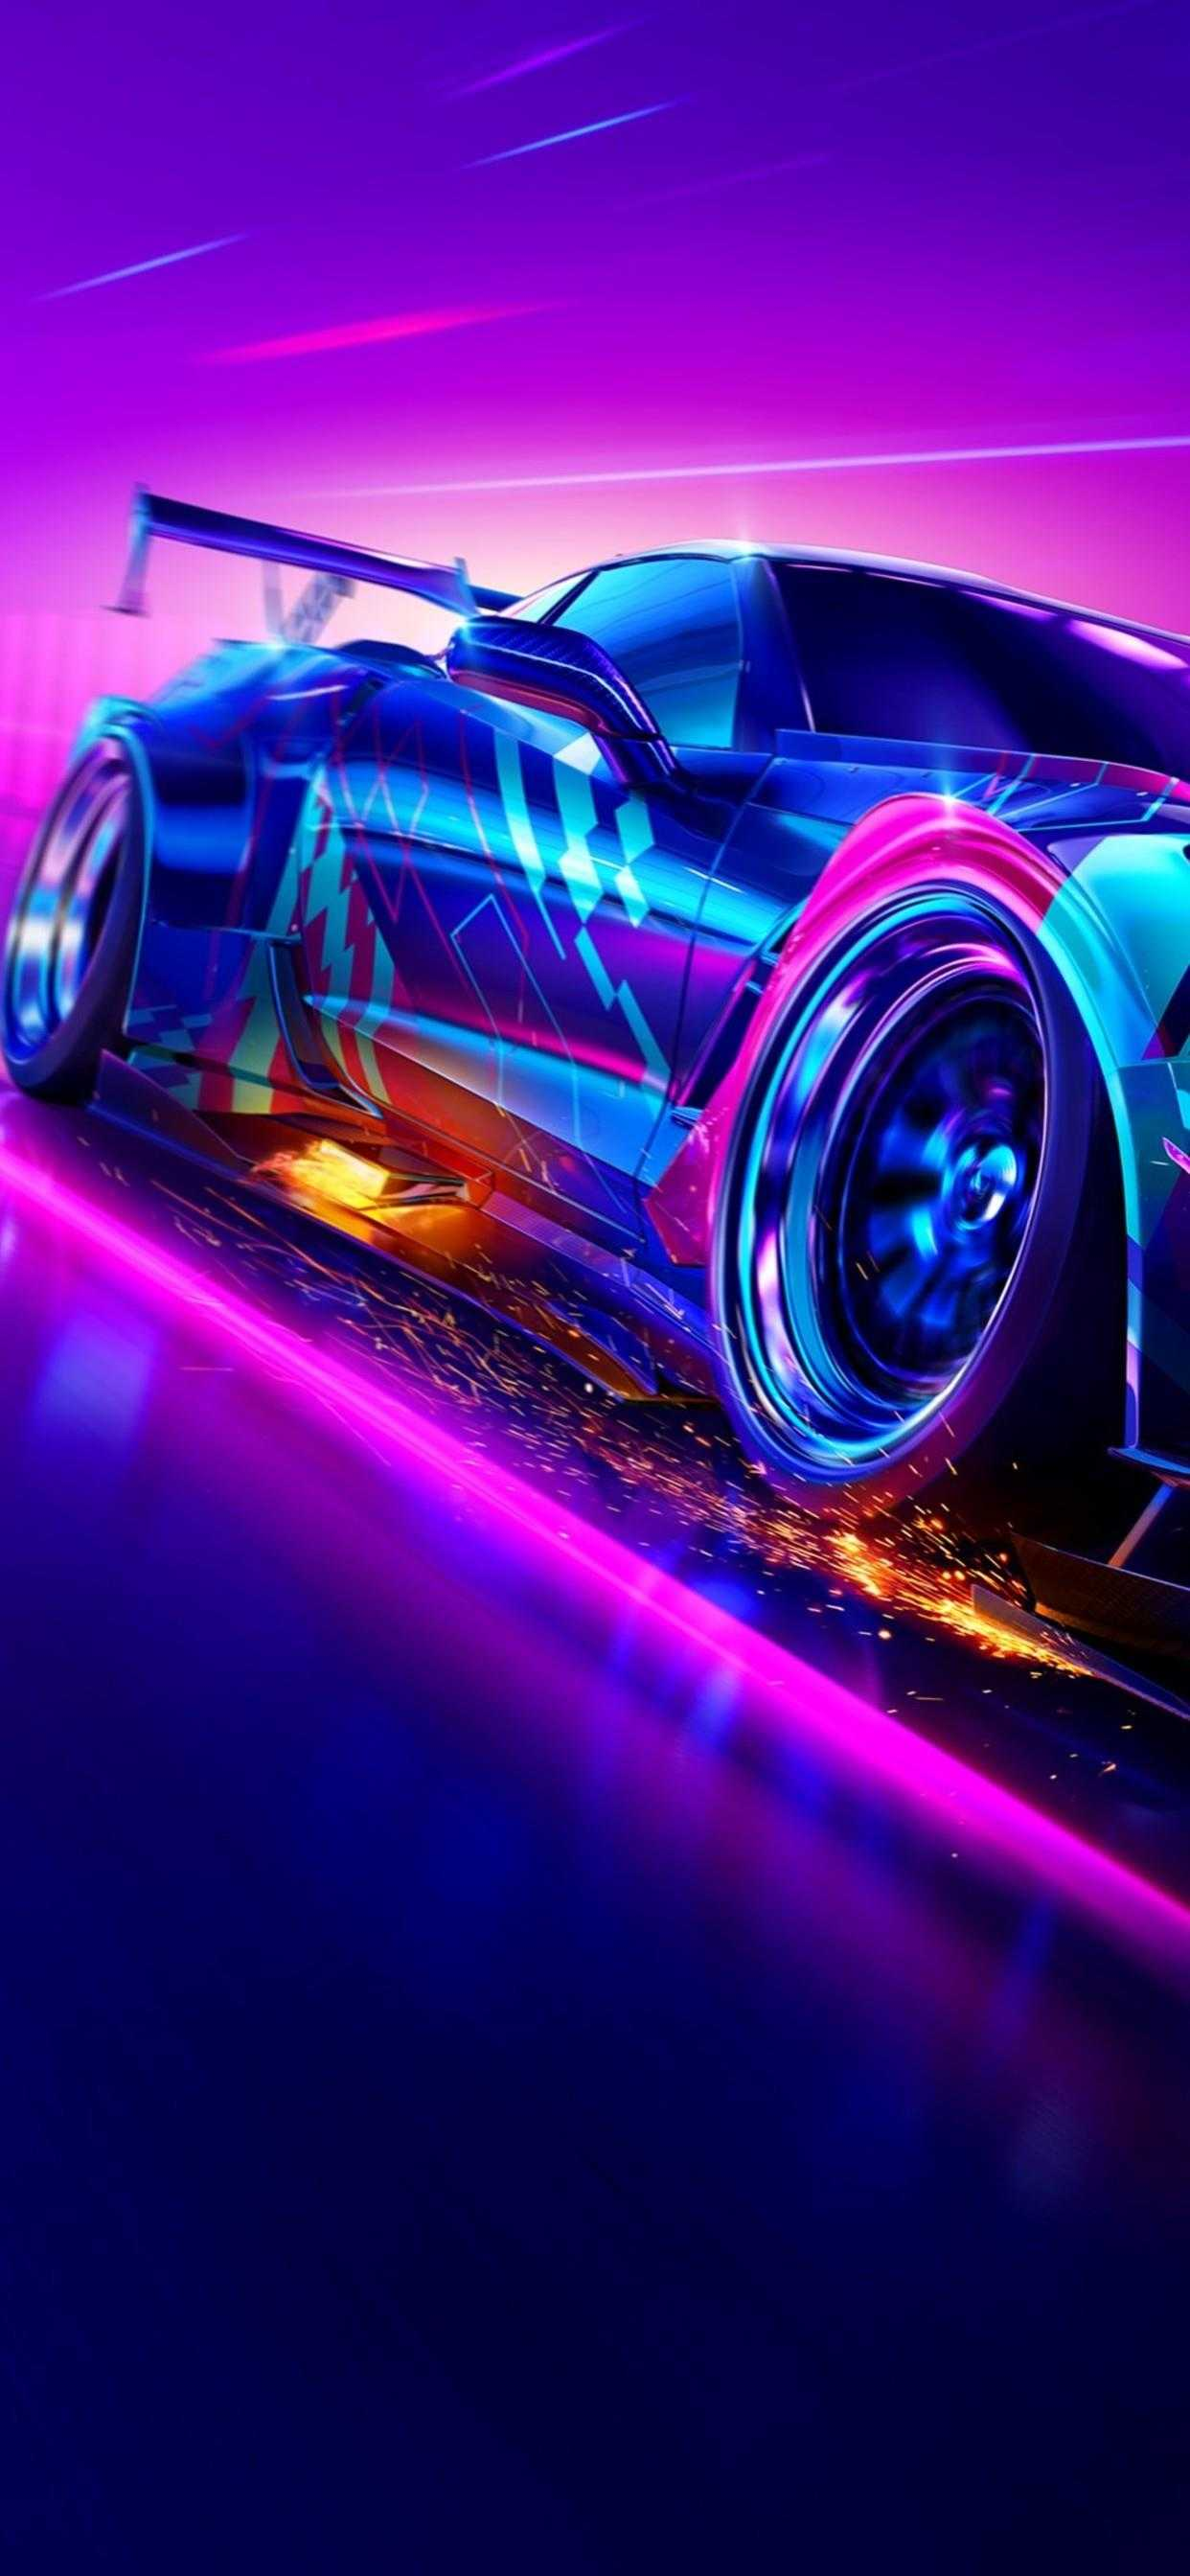 Car Wallpapers Kolpaper Awesome Free Hd Wallpapers